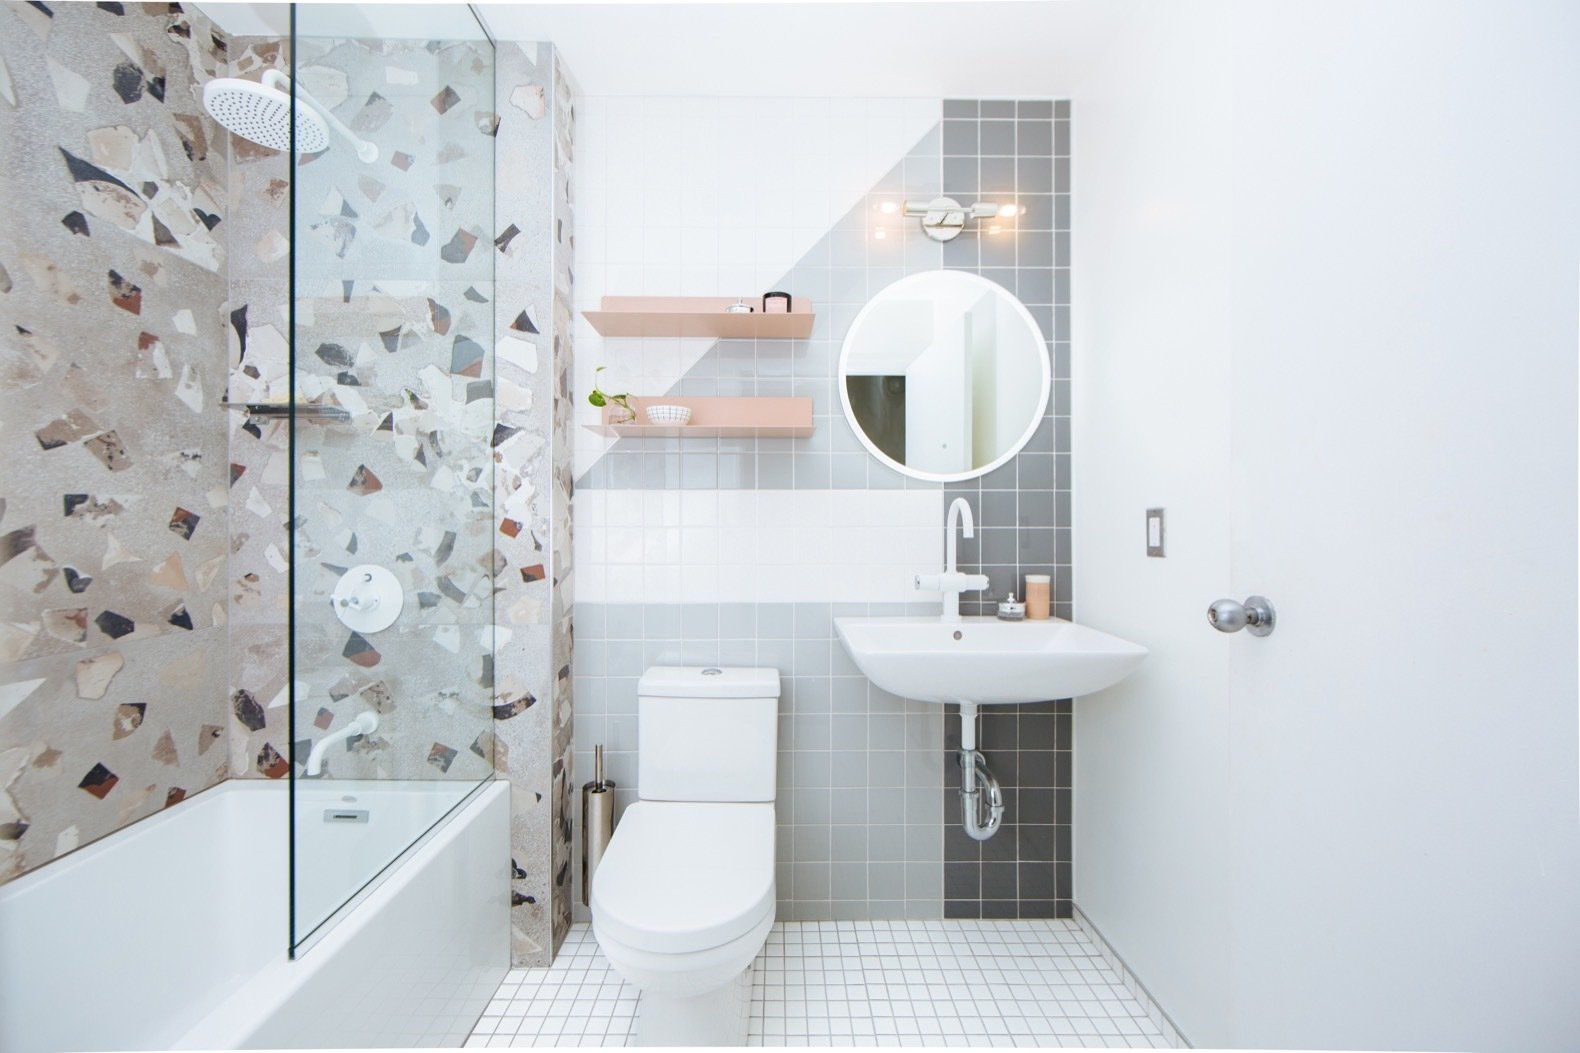 Bath, Porcelain Tile, Enclosed, Two Piece, Ceramic Tile, Wall Mount, Soaking, Wall, and Alcove The floor tile is from Virginia Tile, while the wall tile is from Daltile.  Best Bath Alcove Ceramic Tile Photos from Budget Breakdown: A Humdrum Bathroom Gets a Retro-Chic Facelift For $17K